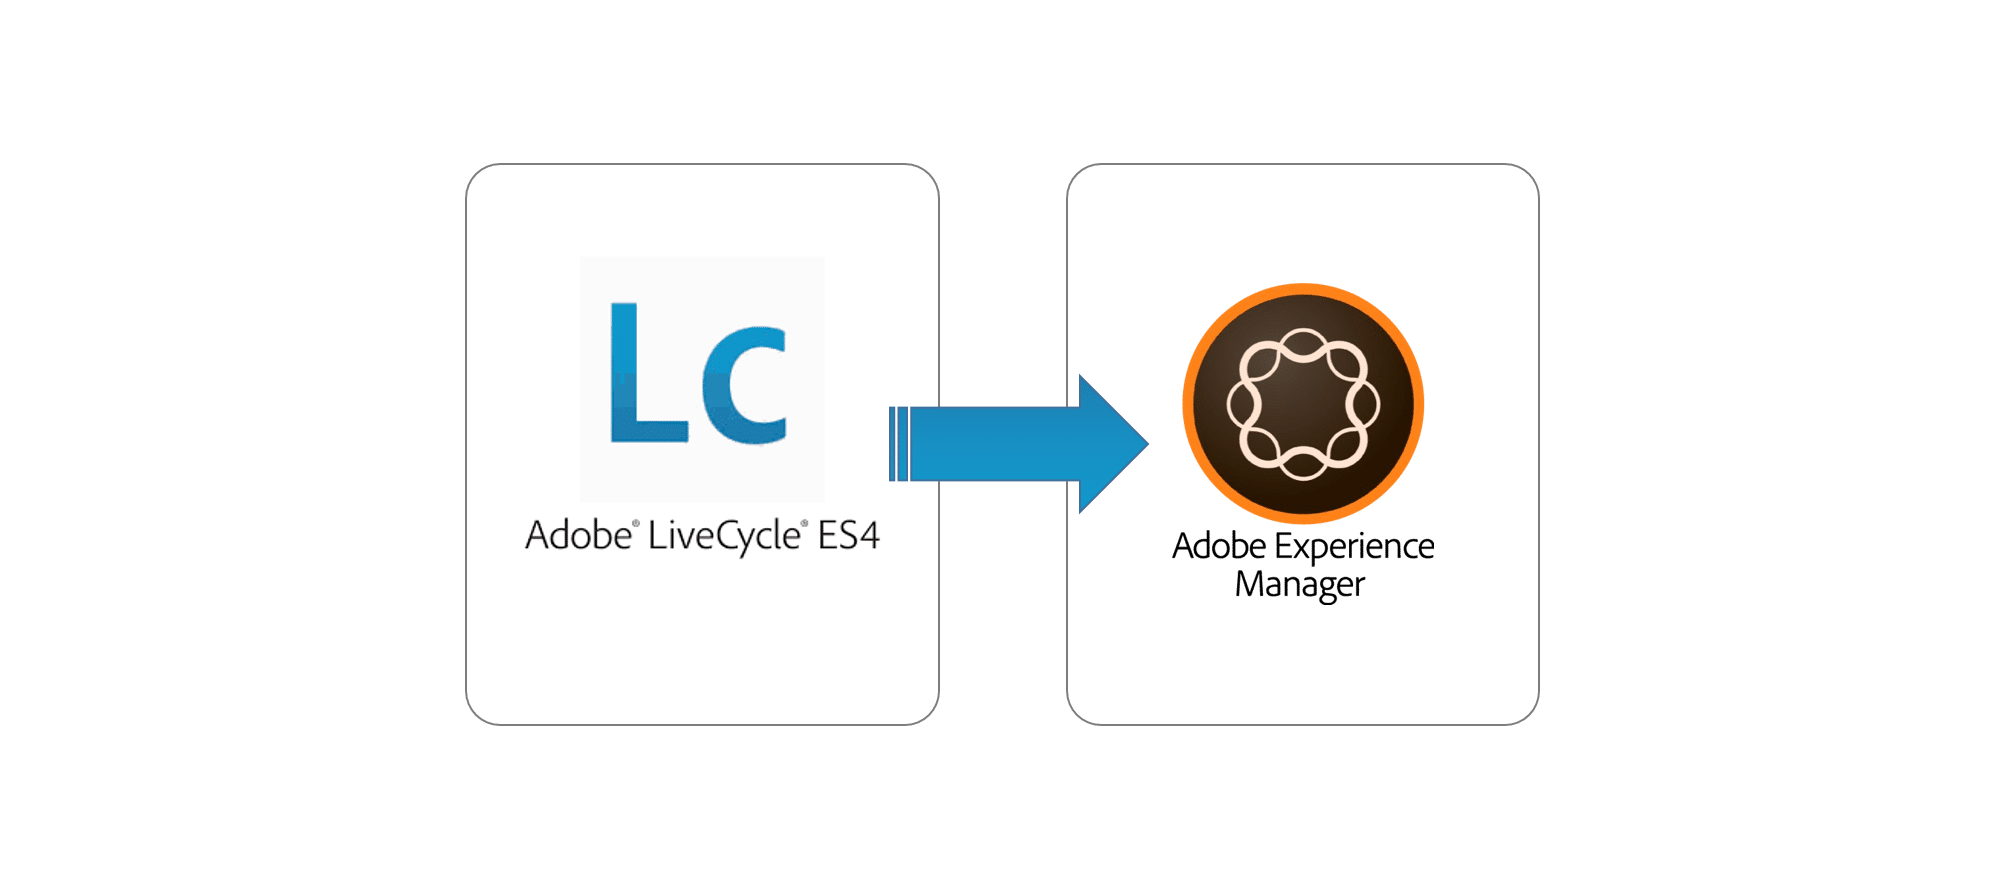 Adobe LiveCycle ES4 to Adobe Experience Manager Migration